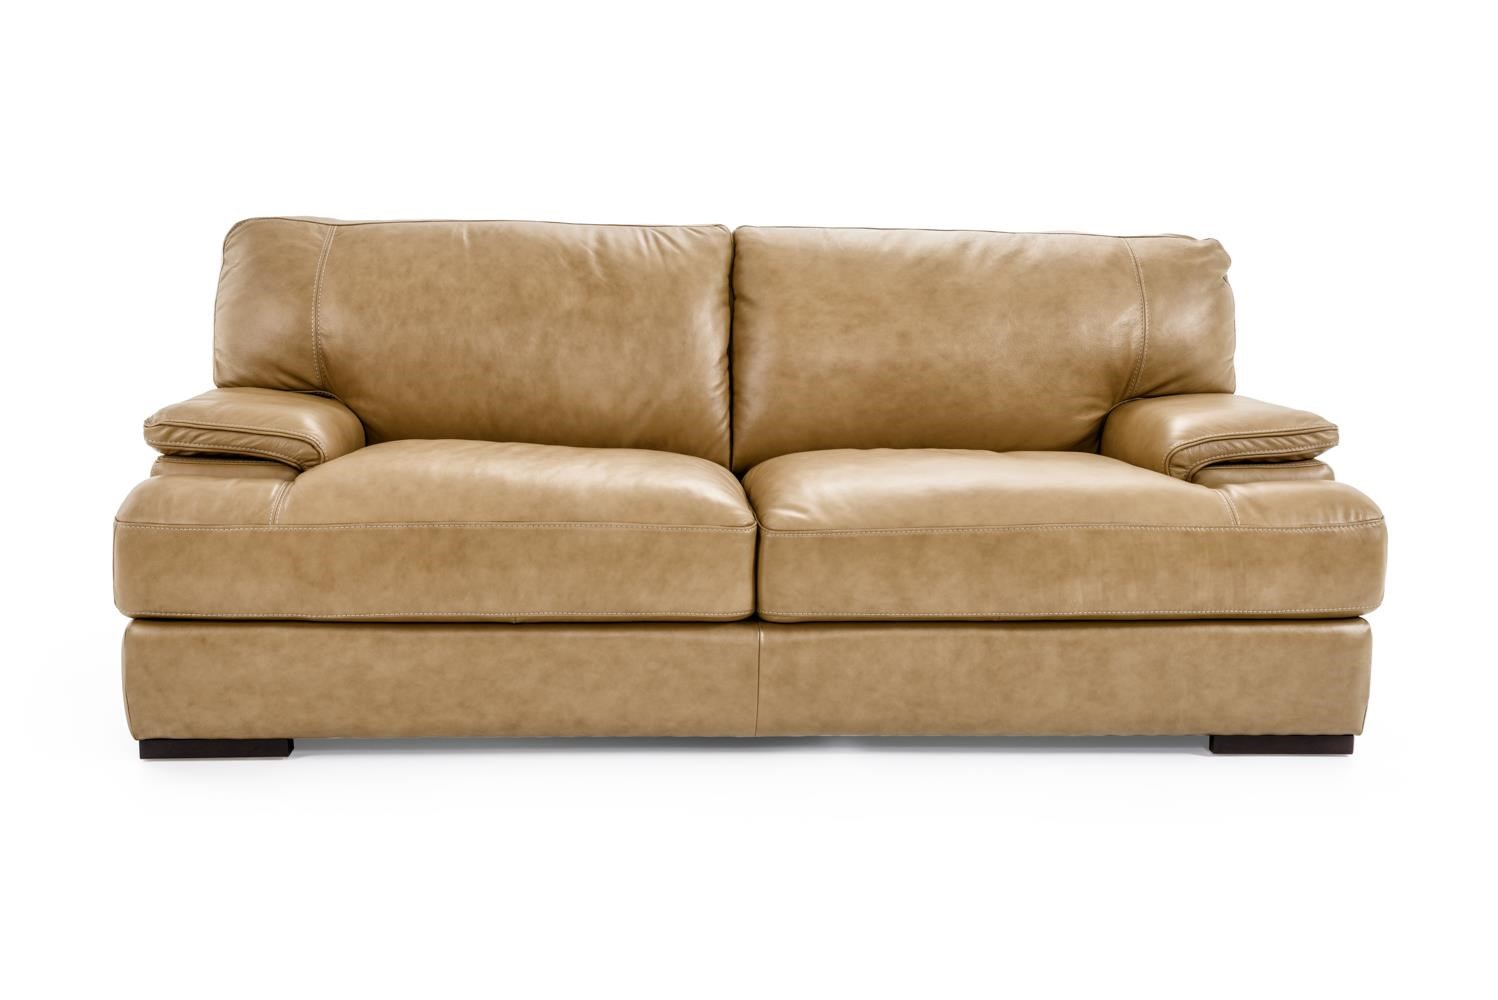 Futura Leather 10027 Sofa - Item Number: 10027-30 1432S NASSAU